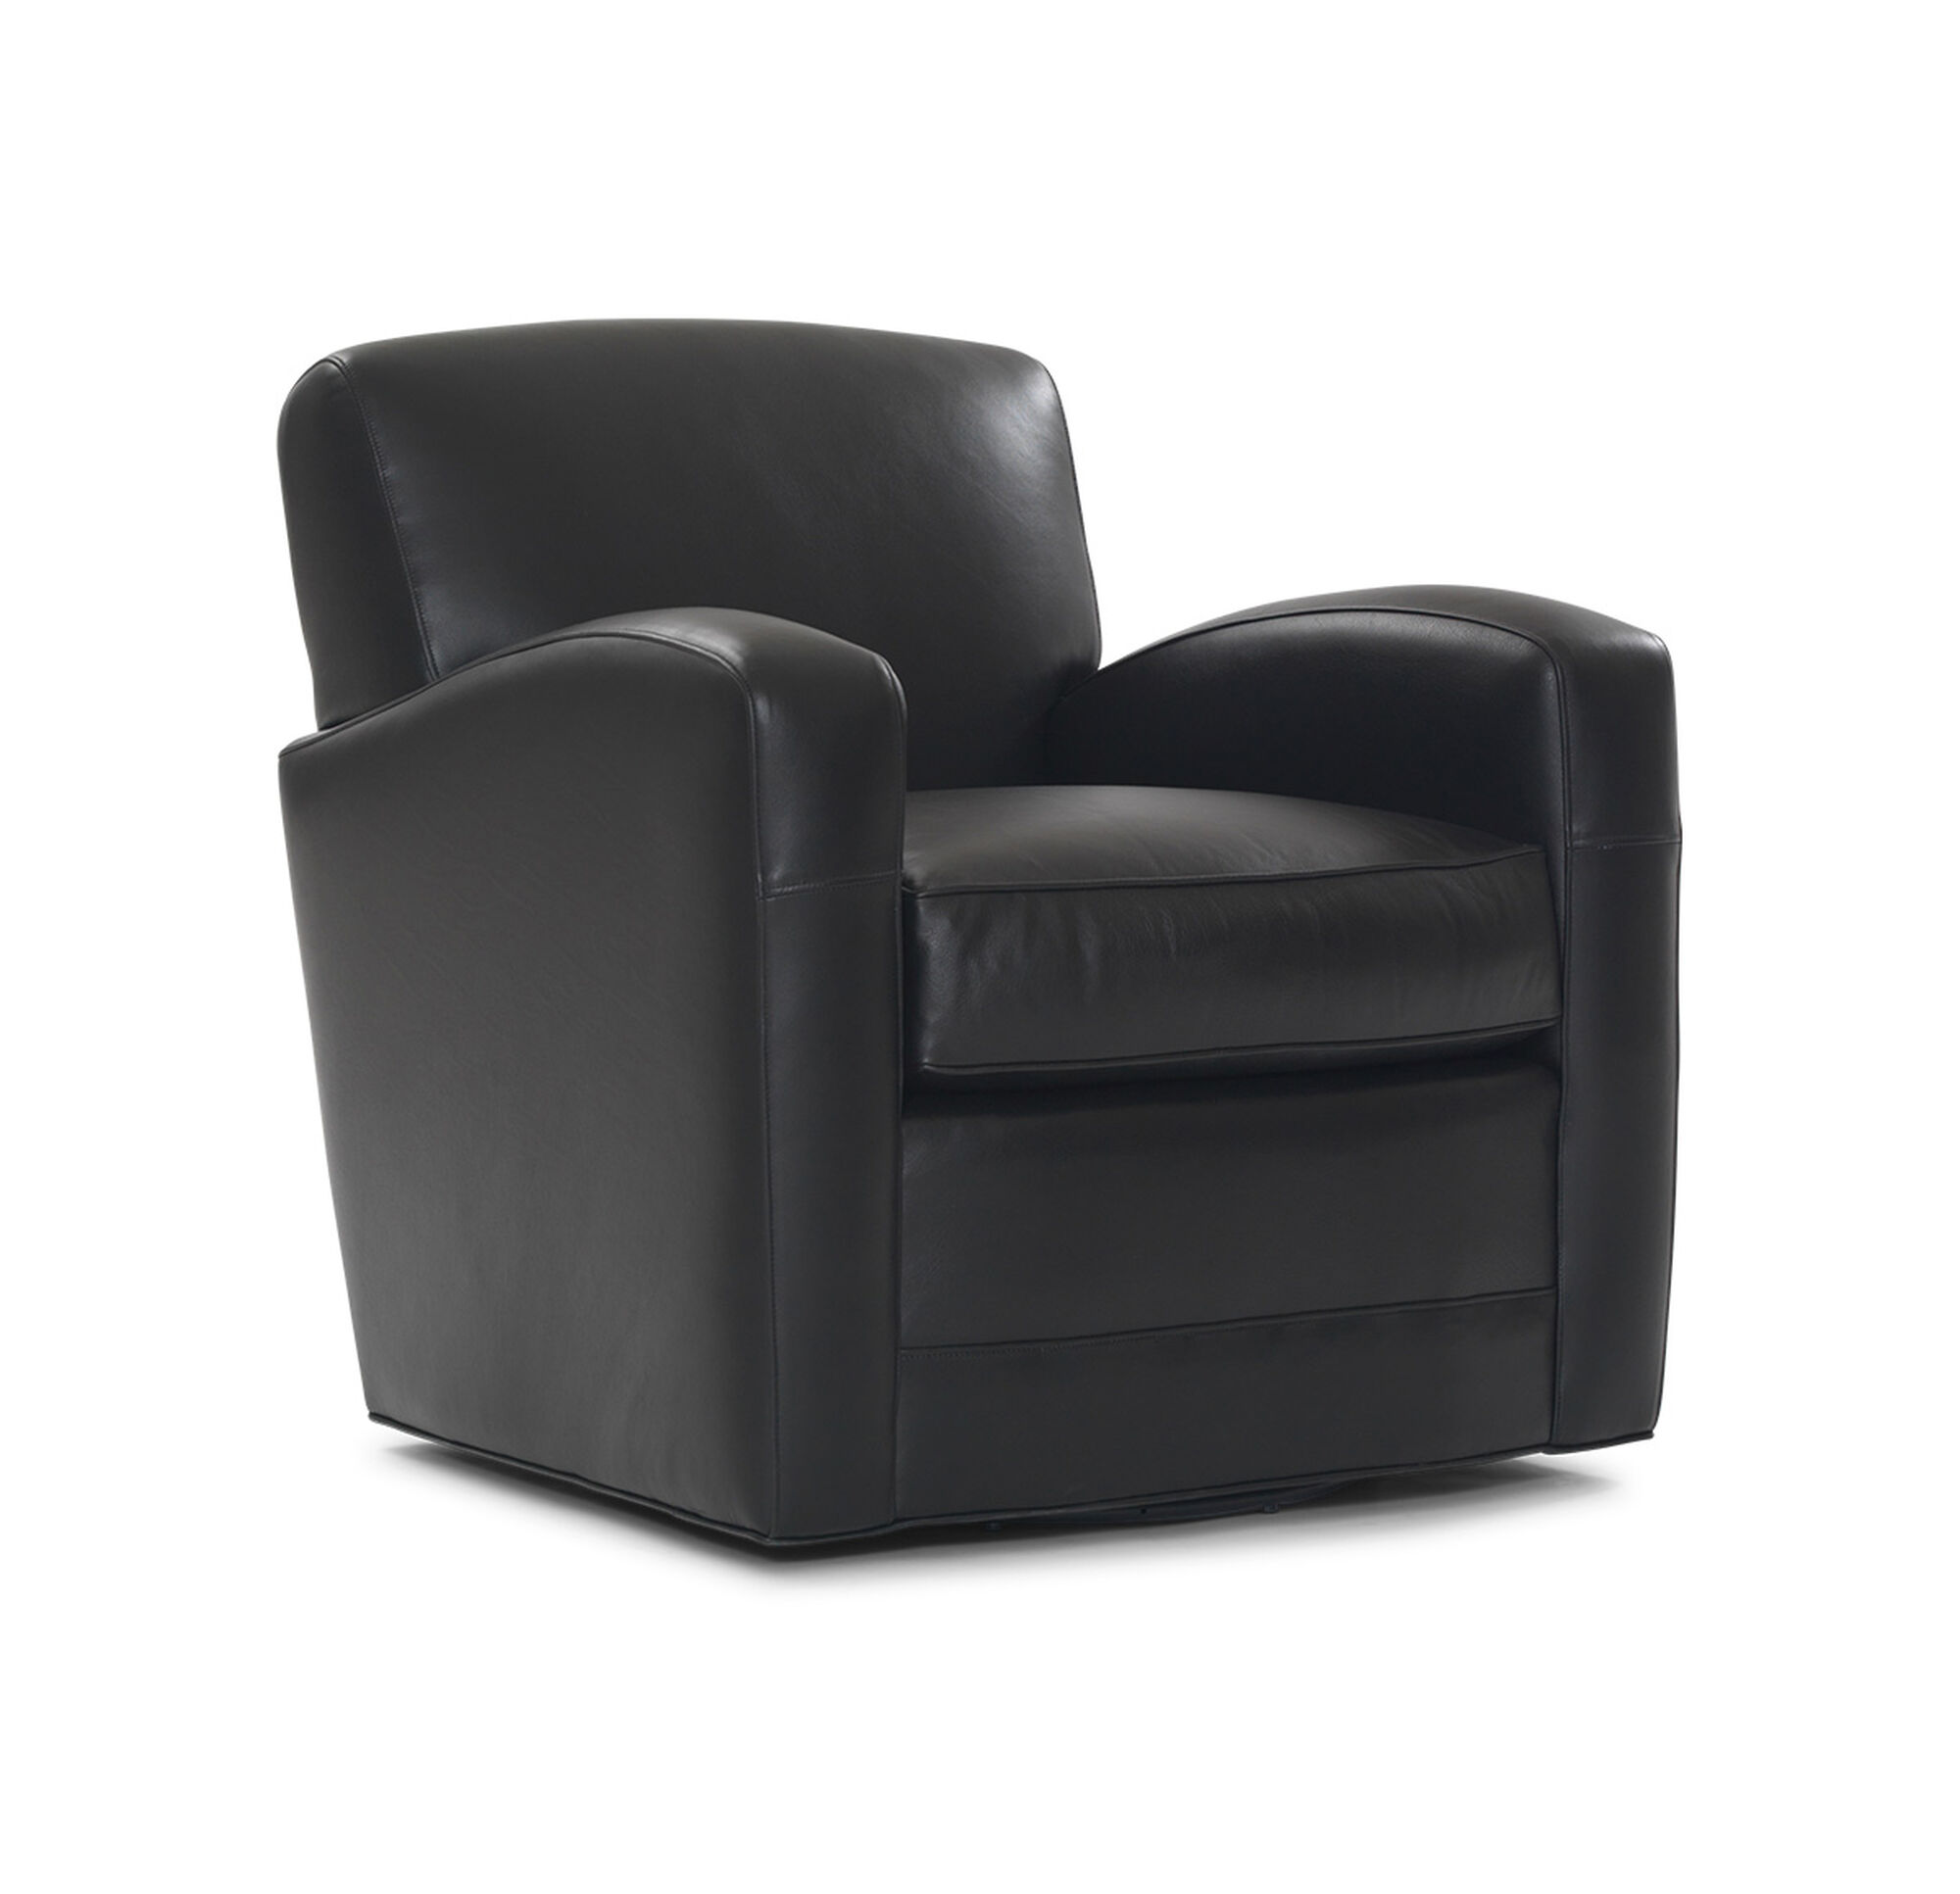 Popular 259 list leather swivel club chair for Swivel club chair leather